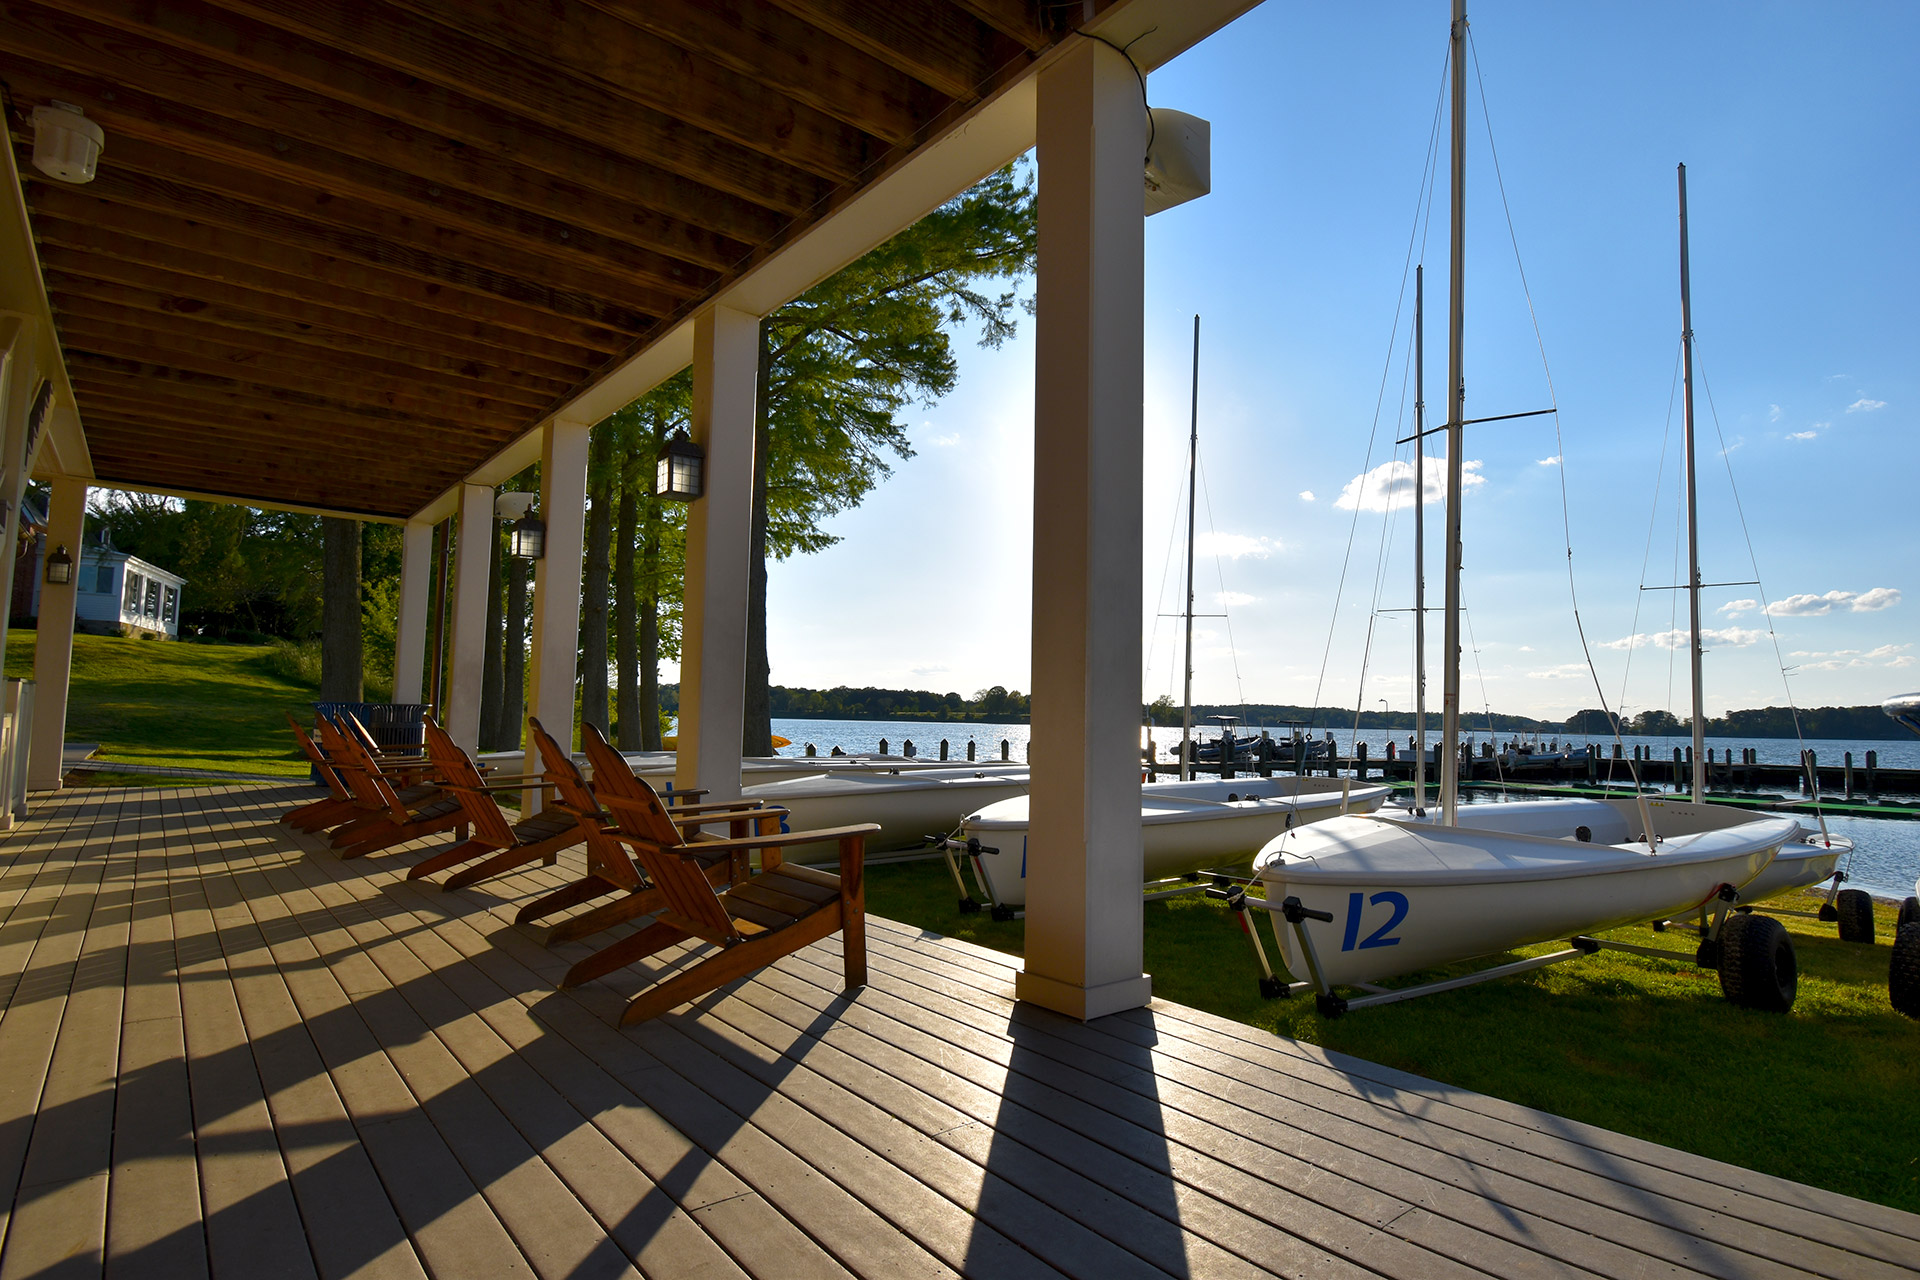 smcm-waterfront-golden-hour-river-center-deck-chairs